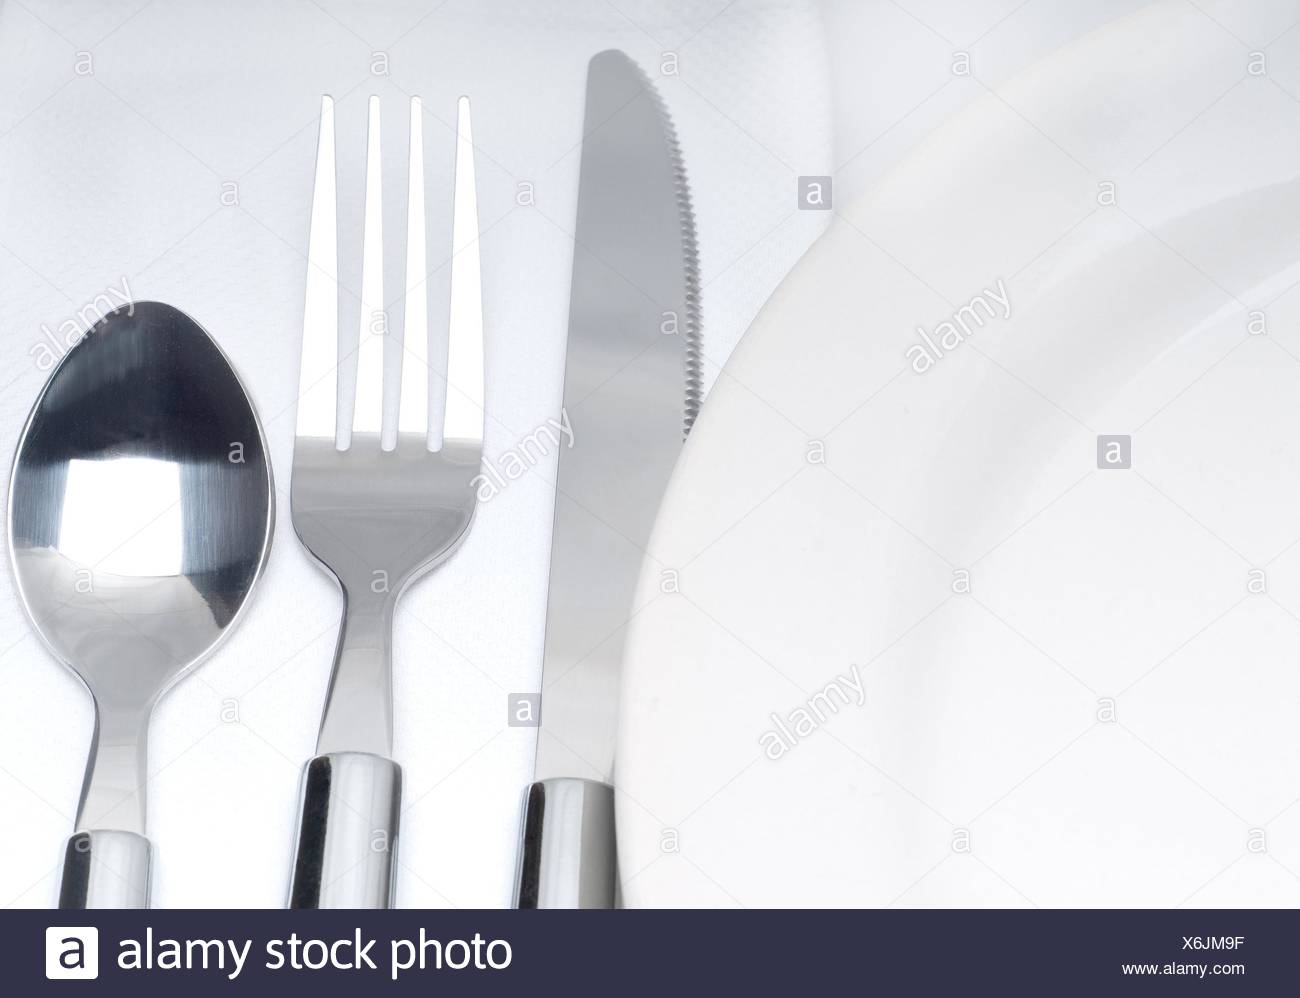 close up of a cutlery set on a table with napkin and dish. - Stock & Empty Plate Cutlery Table Cloth Stock Photos u0026 Empty Plate Cutlery ...